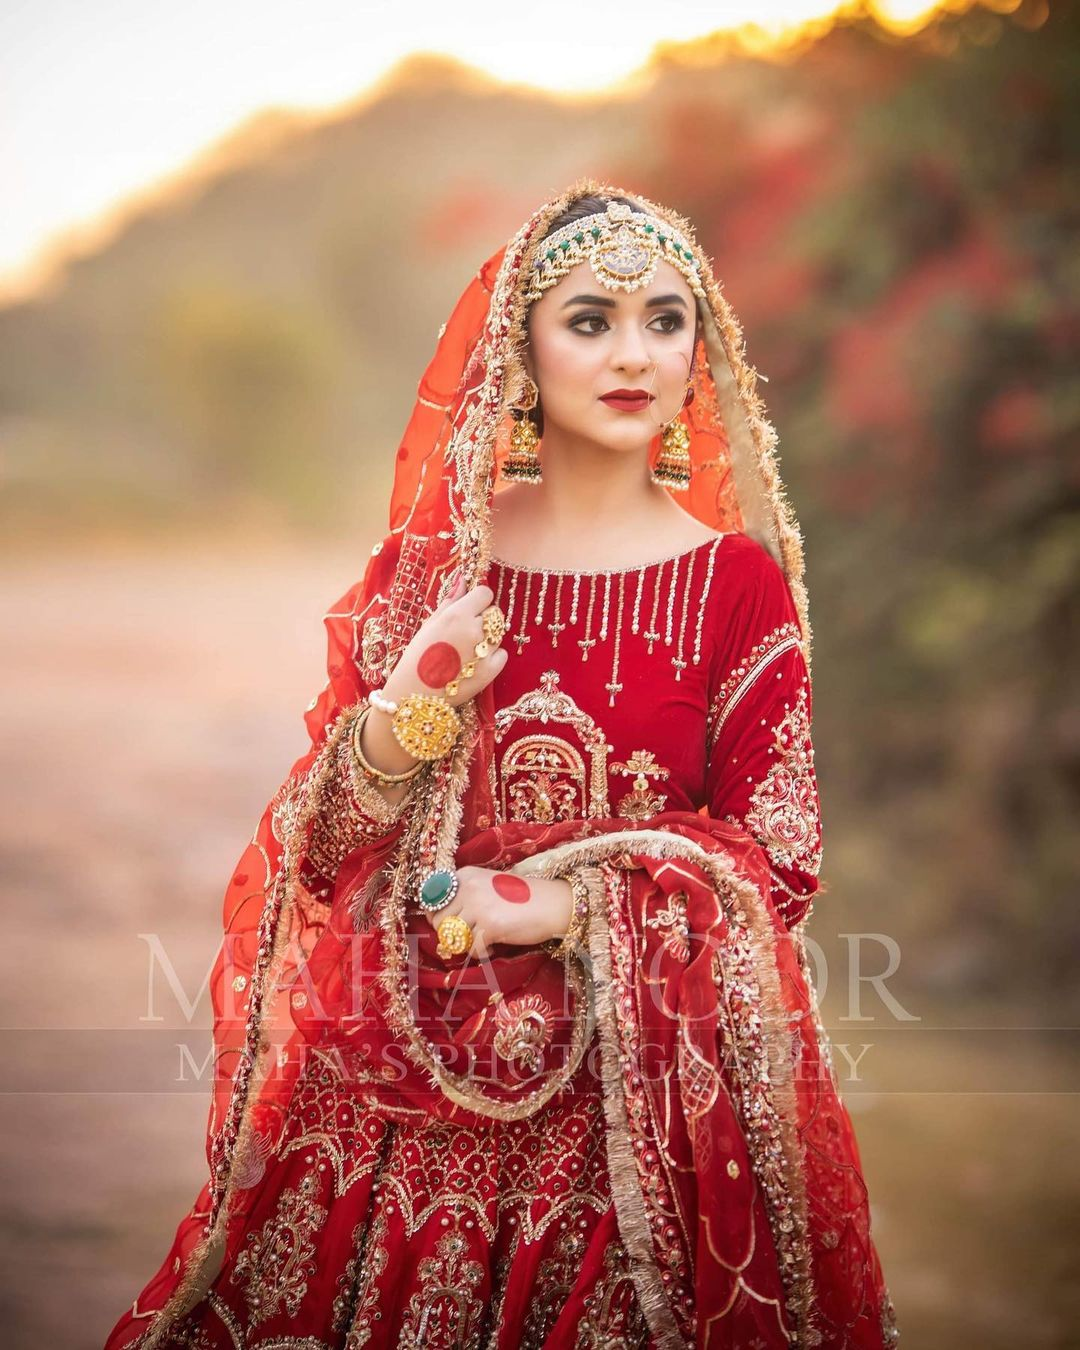 Yumna Zaidi Awesome Recent Instagram pictures